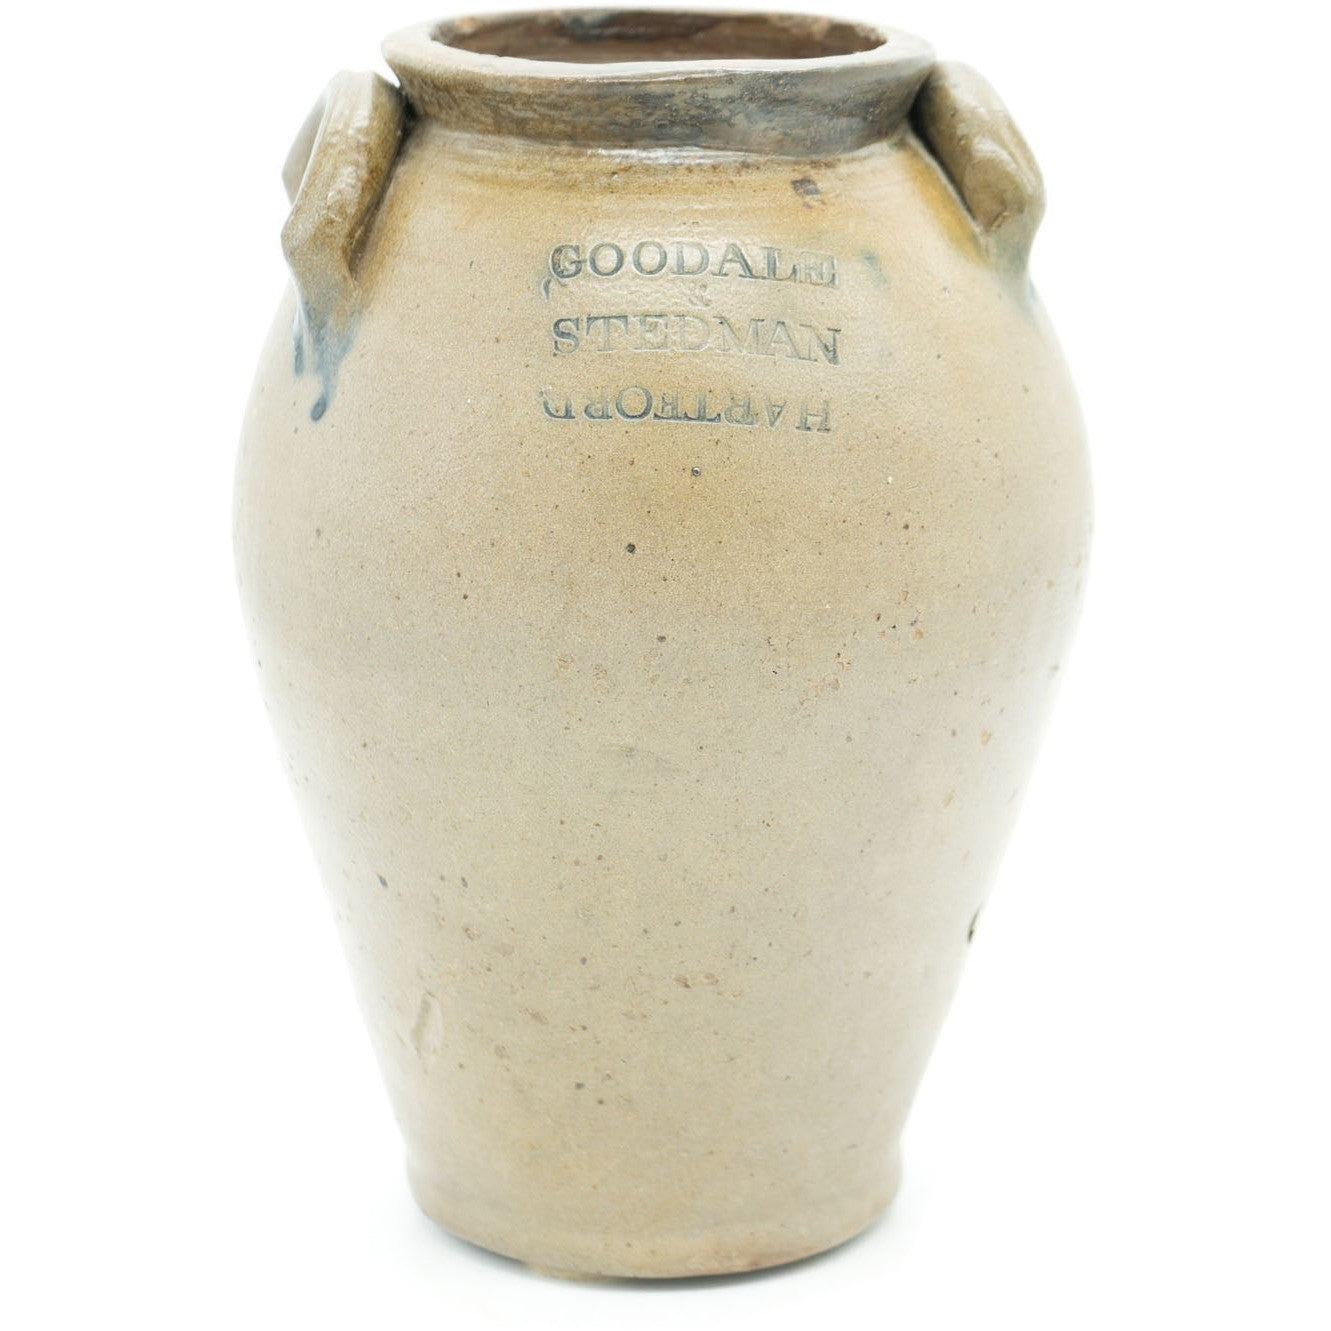 Goodale & Stedman Antique Stoneware Crock Jug